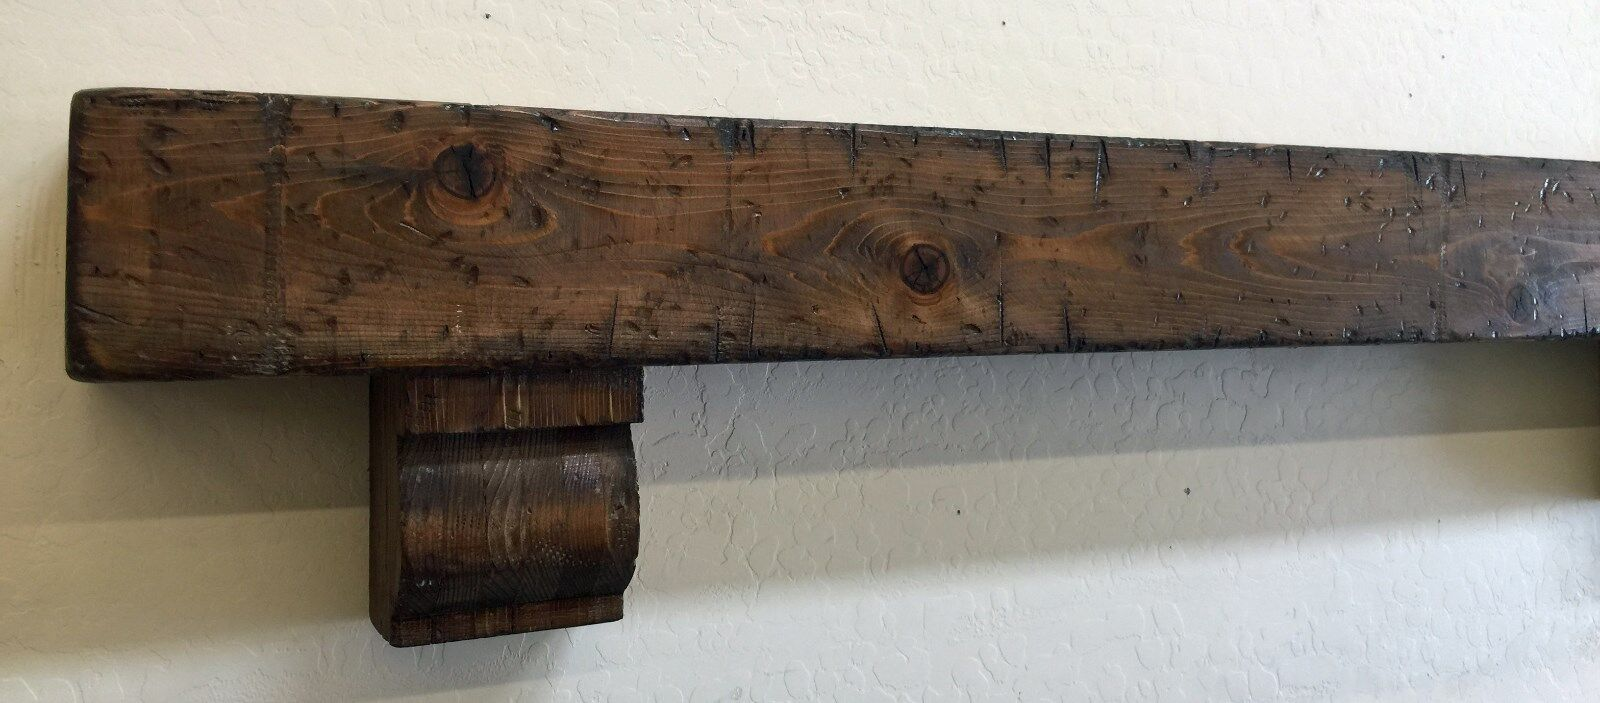 Rustic Fireplace Mantle,Wood Beam Mantle with corbels,Rustic Mantle,60 inches